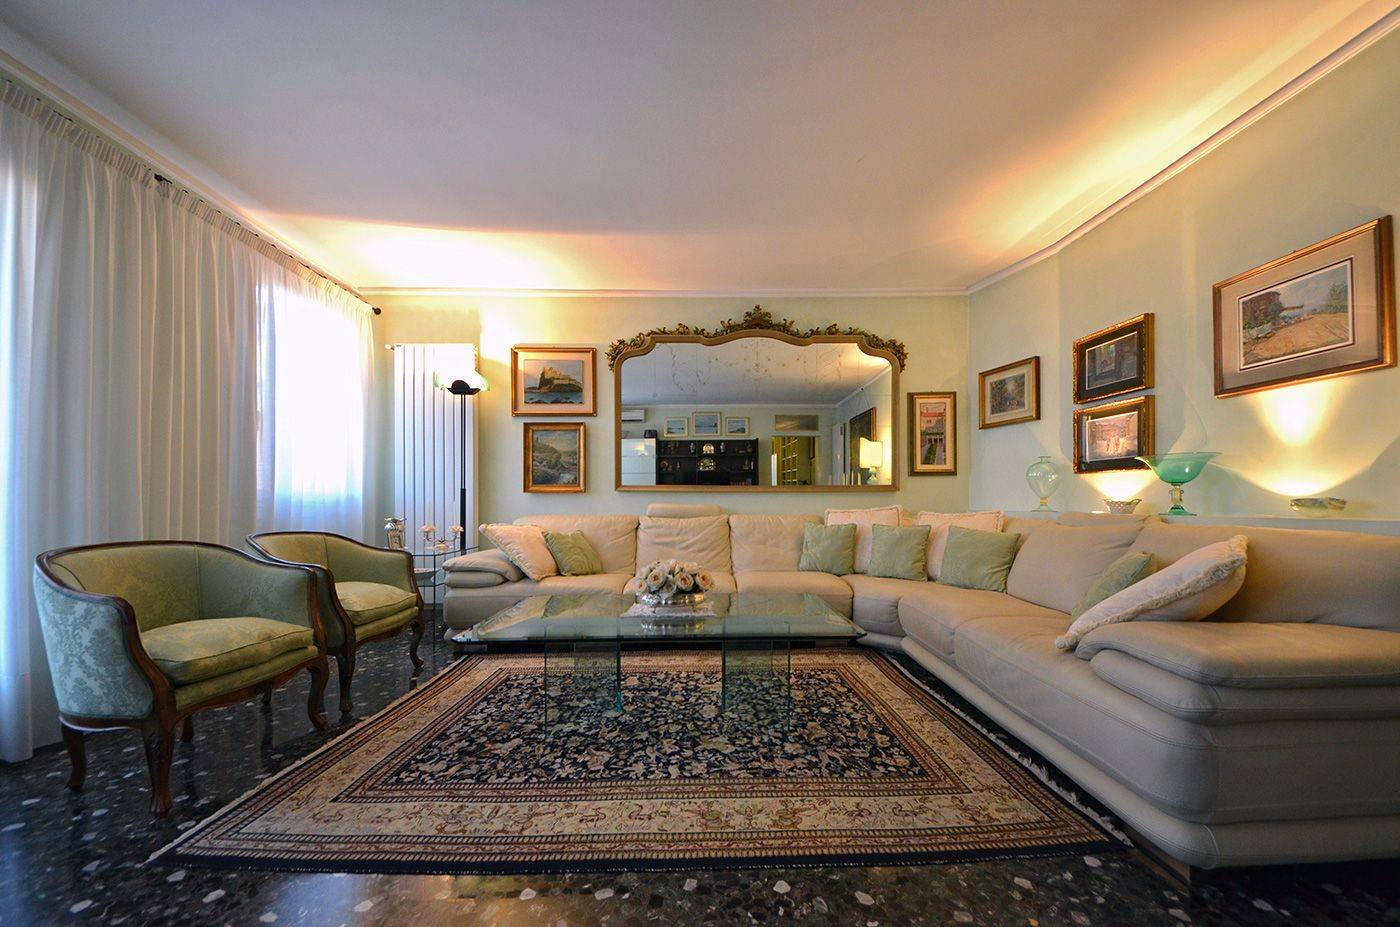 the living room is comfortable and spacious besides being elegant